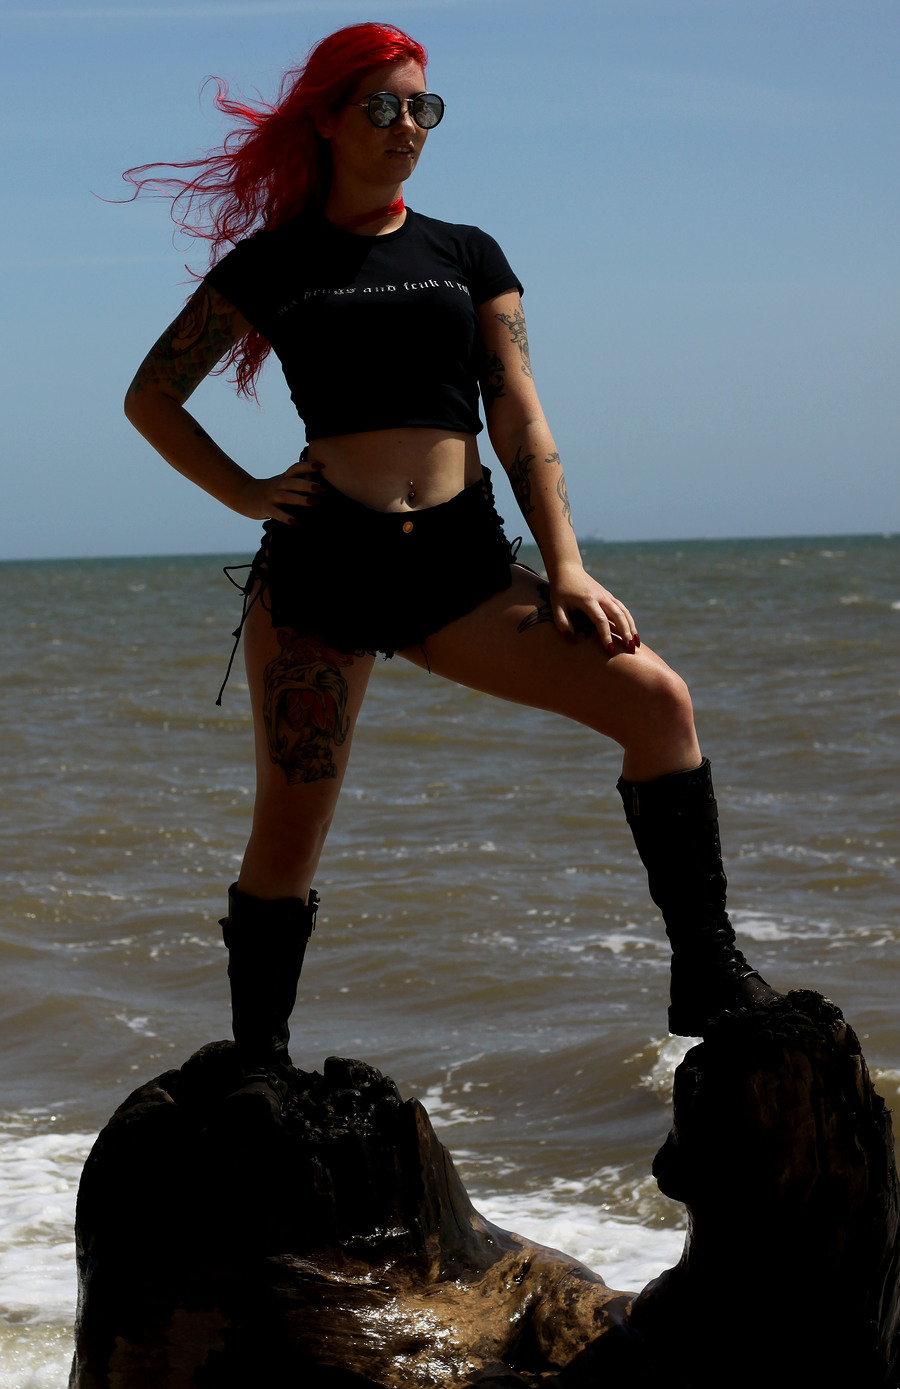 Let Battle Commence / Photography by Fenland Photographic, Model Patty Cakes / Uploaded 25th June 2020 @ 10:44 AM